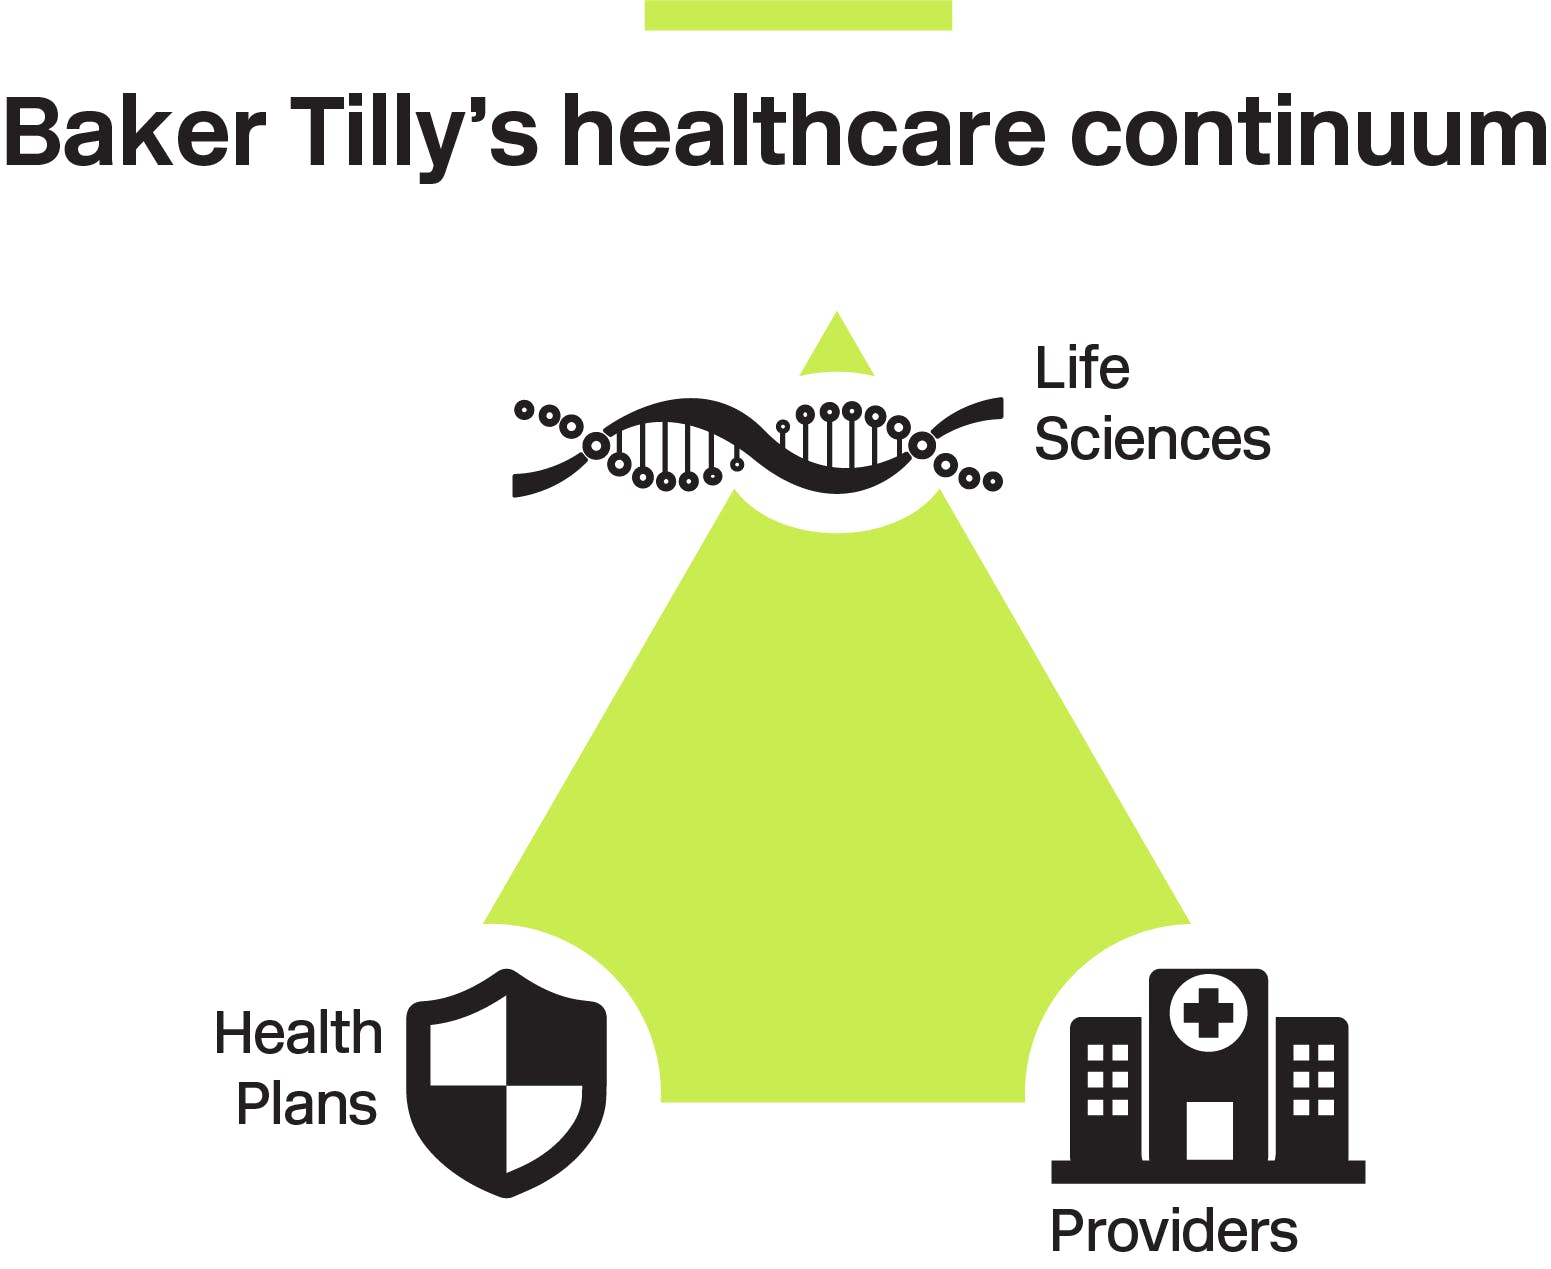 Baker Tilly's healthcare continuum